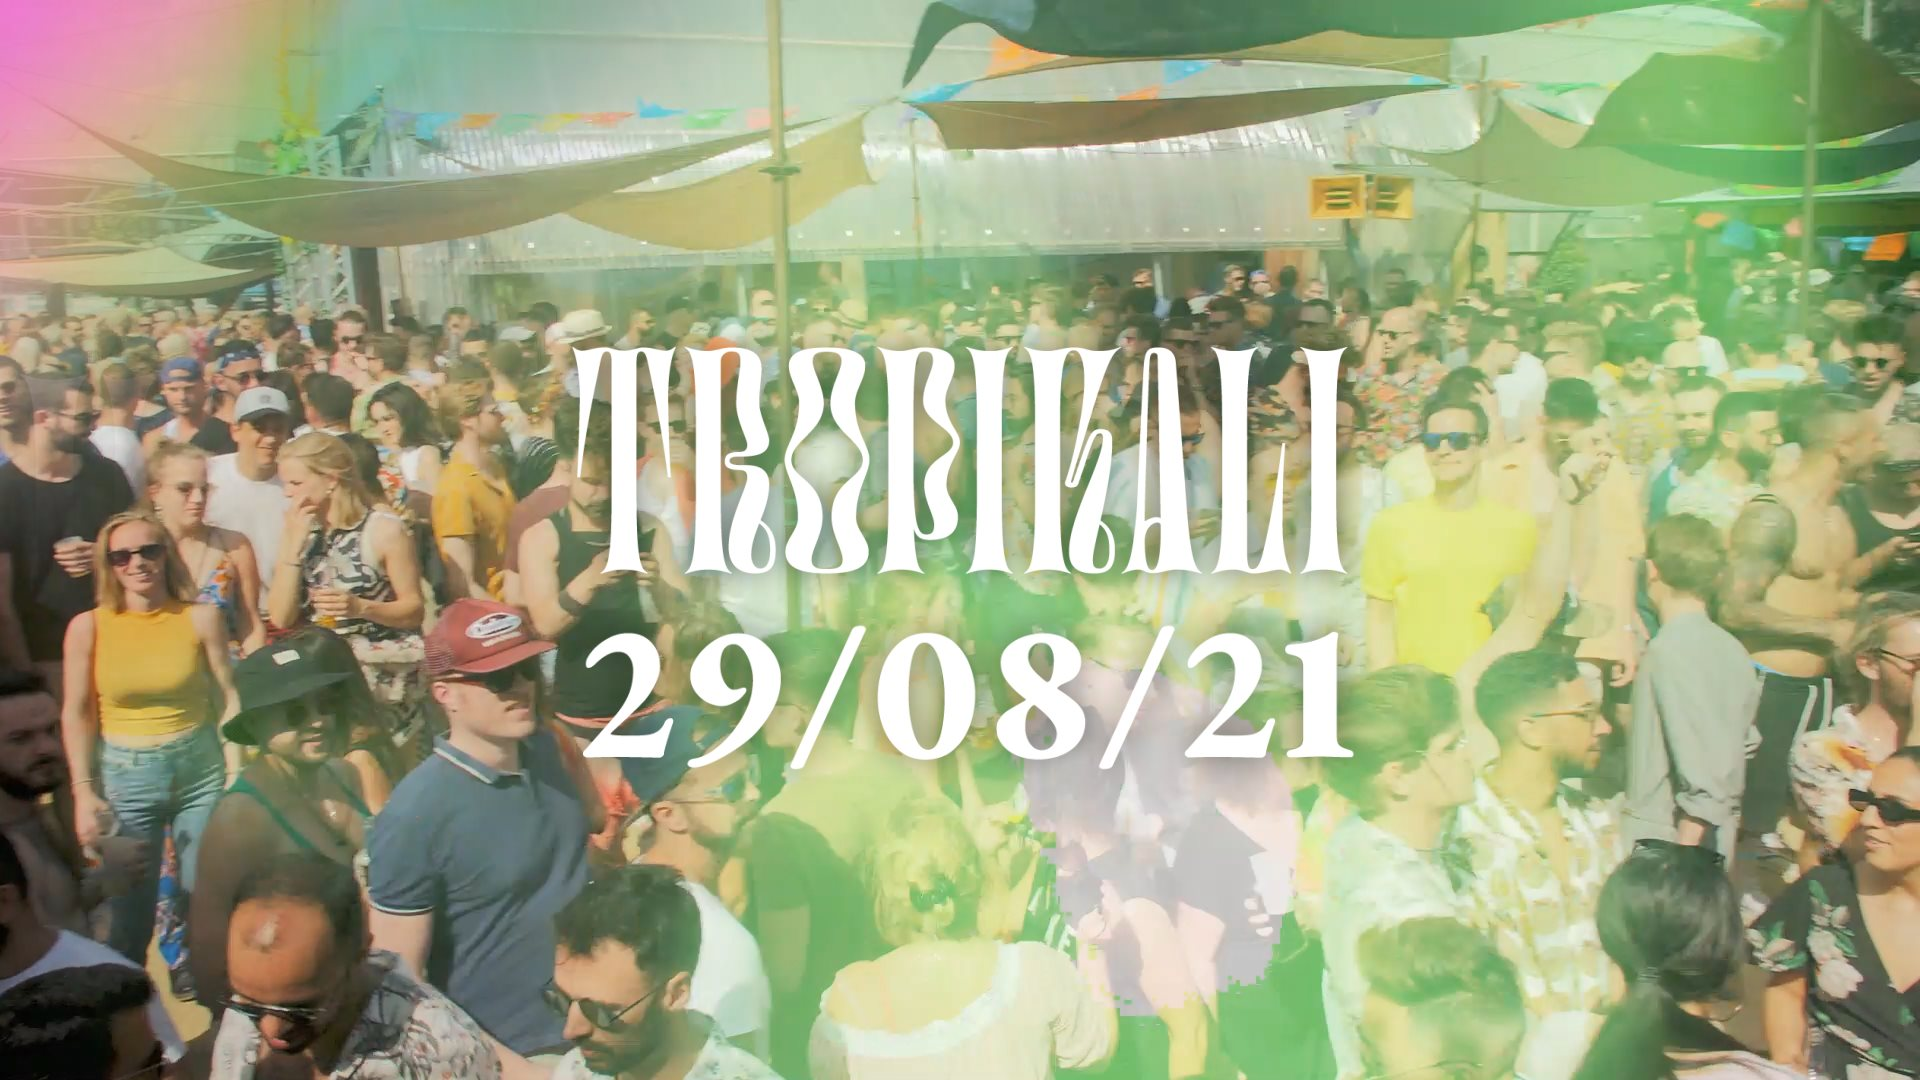 Tropikali Festival 2021 Amsterdam - Gay Outdoor Dance Festival and Party